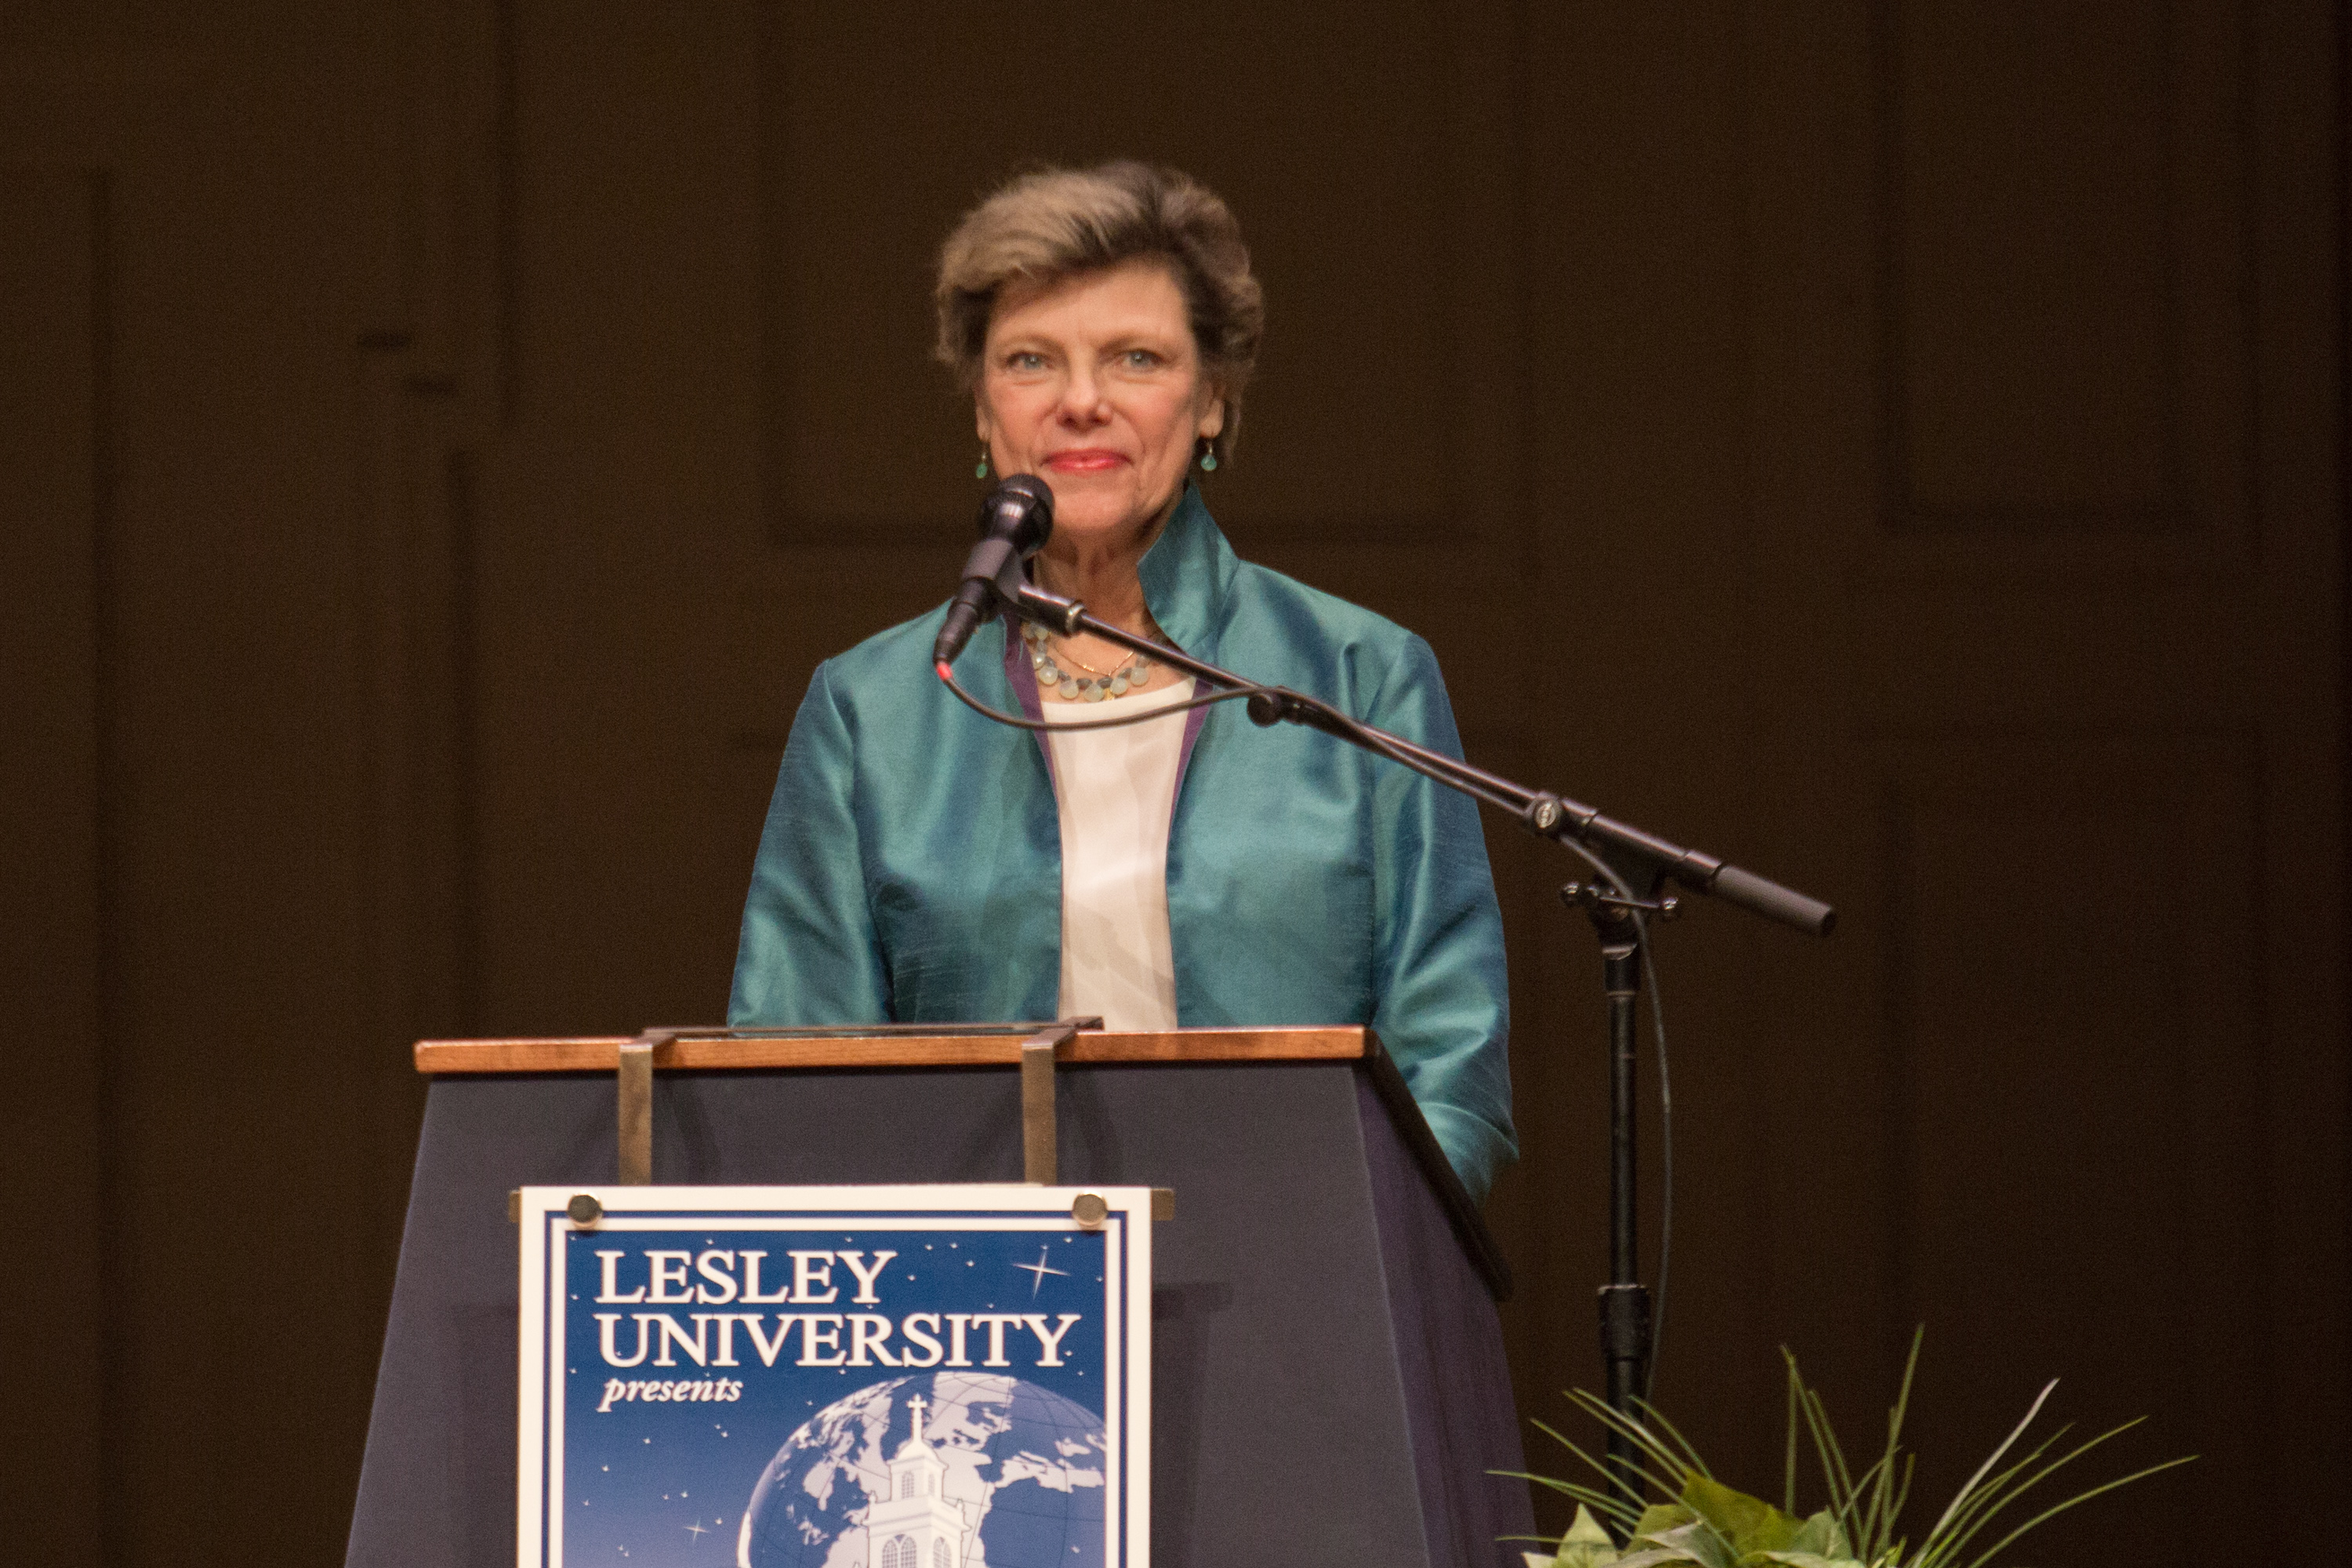 Cokie Roberts stands on stage behind the podium.